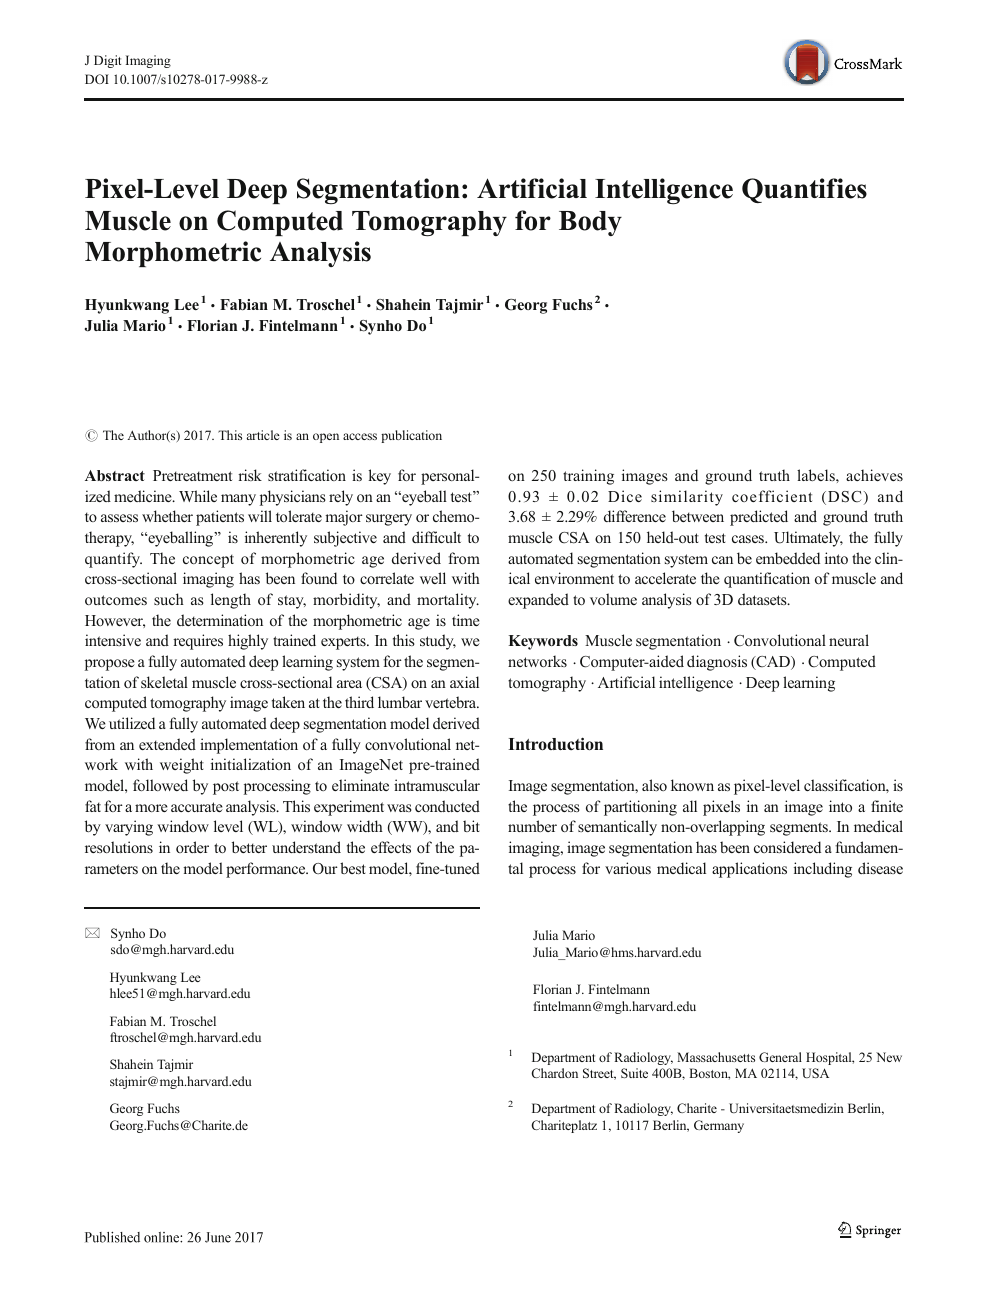 003 Researchs Artificial Intelligence Imposing Research Papers On In Marketing Ieee Pdf Full